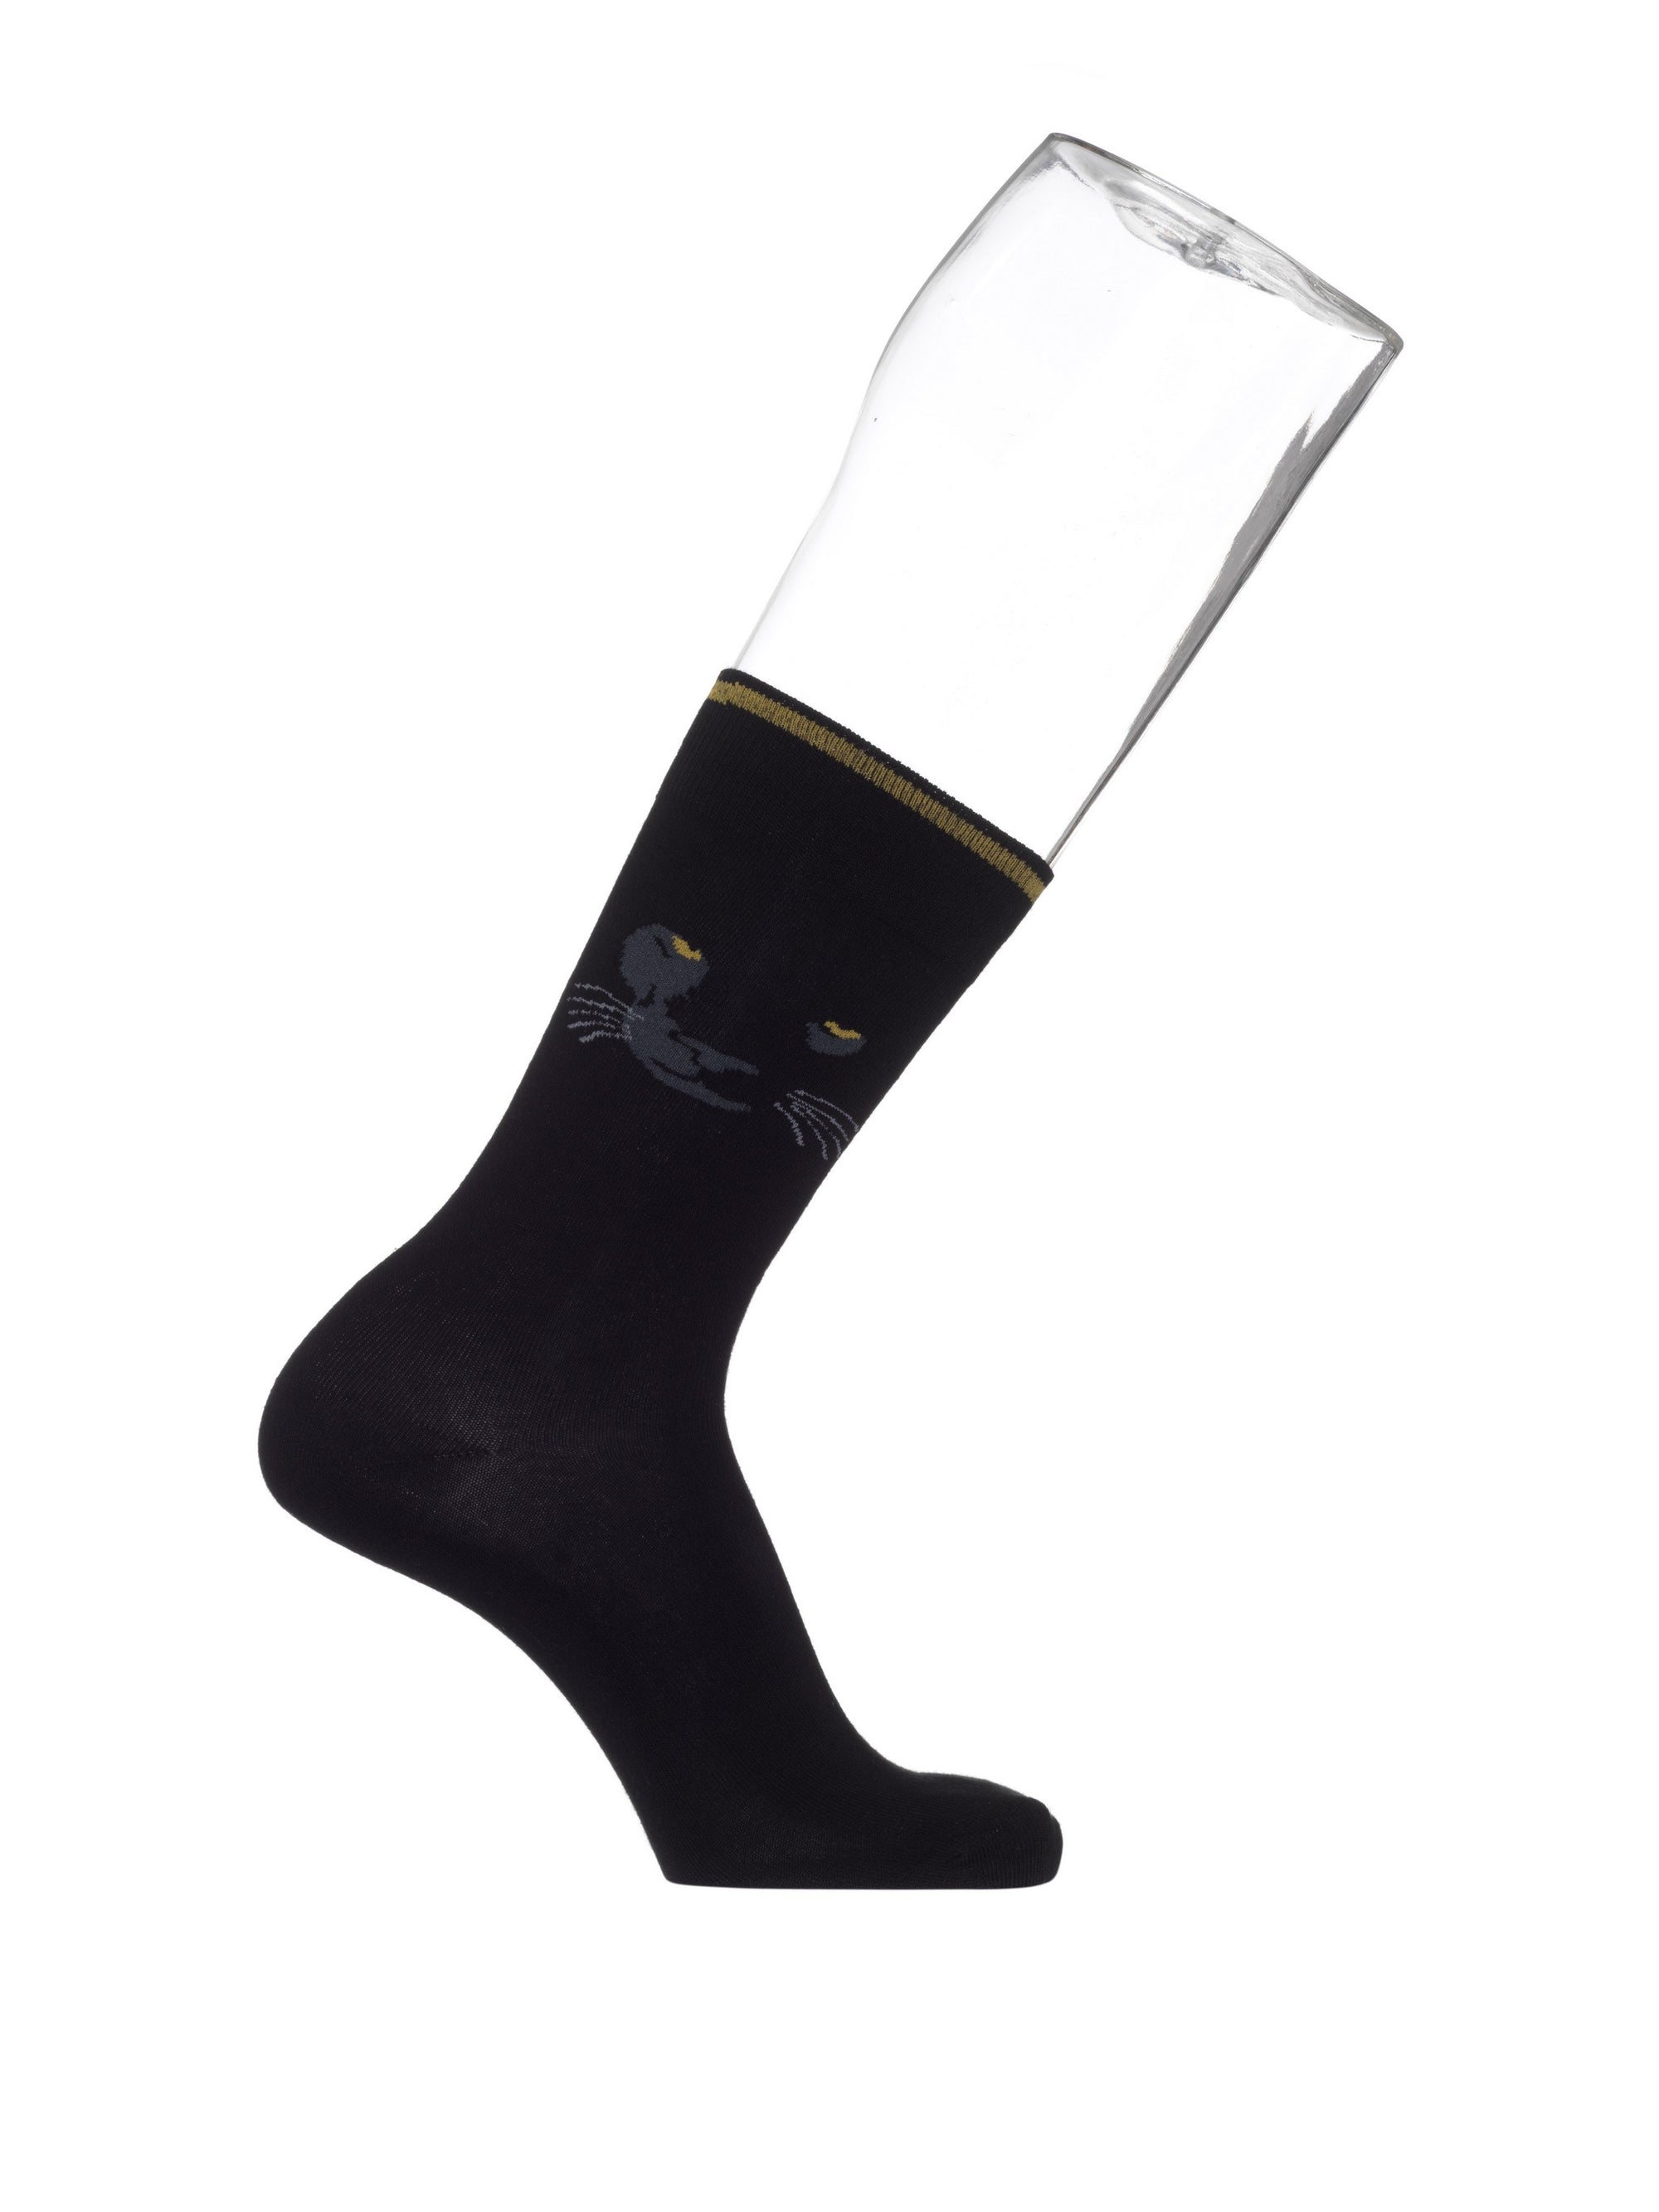 Black Panther Sock BN952130 Black Panther Sock BN952130 - Jambelles Bonnie Doon 40-46 / Black Black